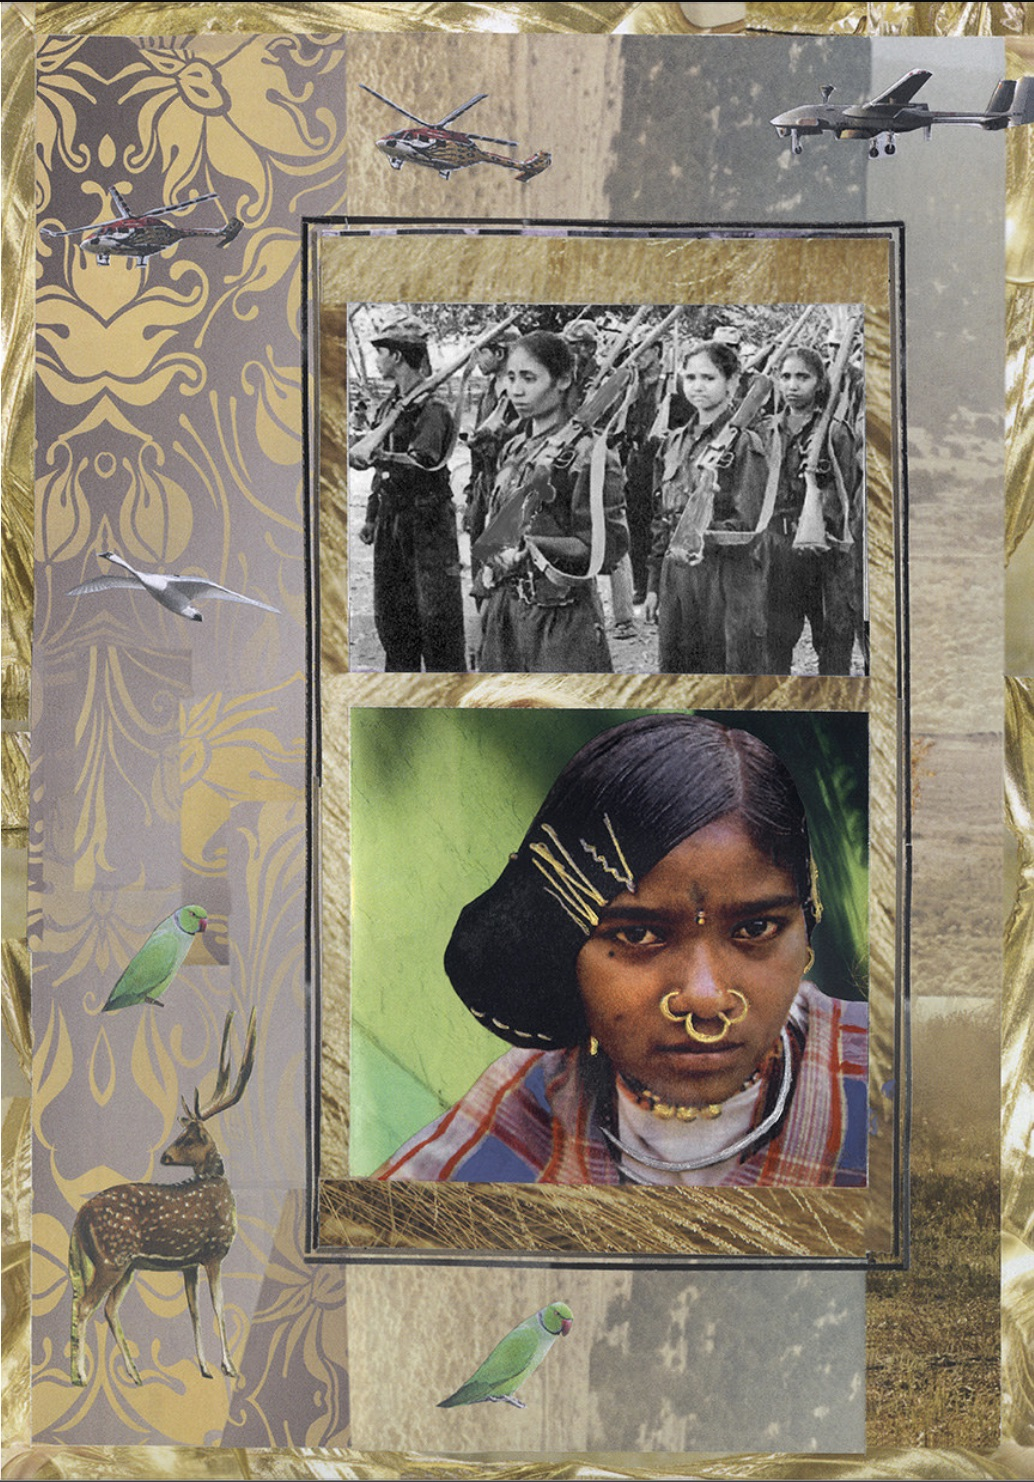 Ameeta Nanji, Dongria Girl, Delhi Love Song series, 2017. Recycled Print Media Paper. 17 ¼ x 21 ¼ inches. Courtesy of the artist.